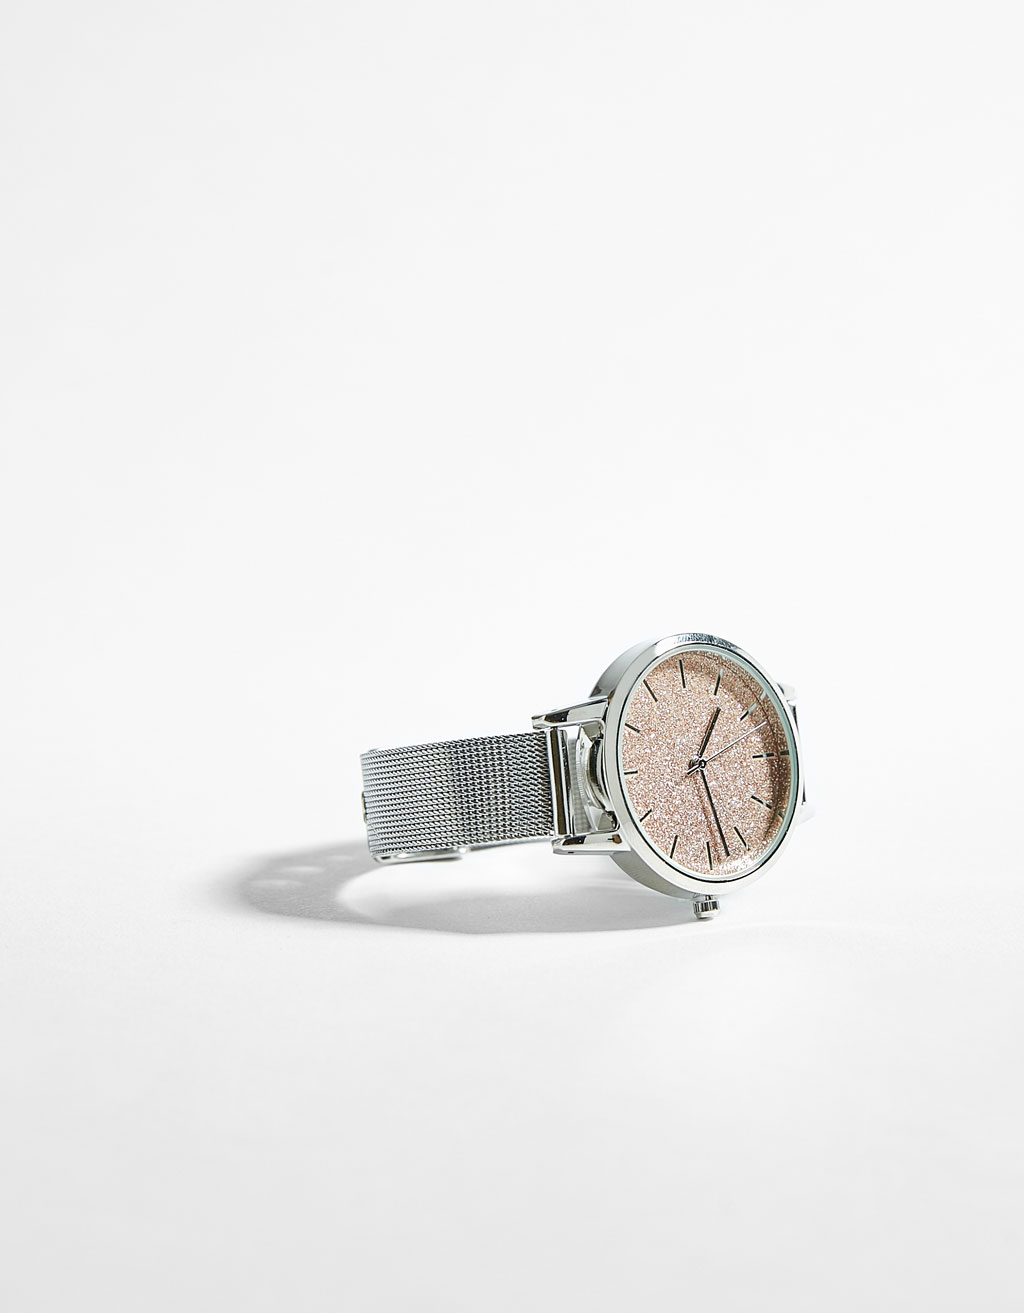 Mesh watch with shiny dial